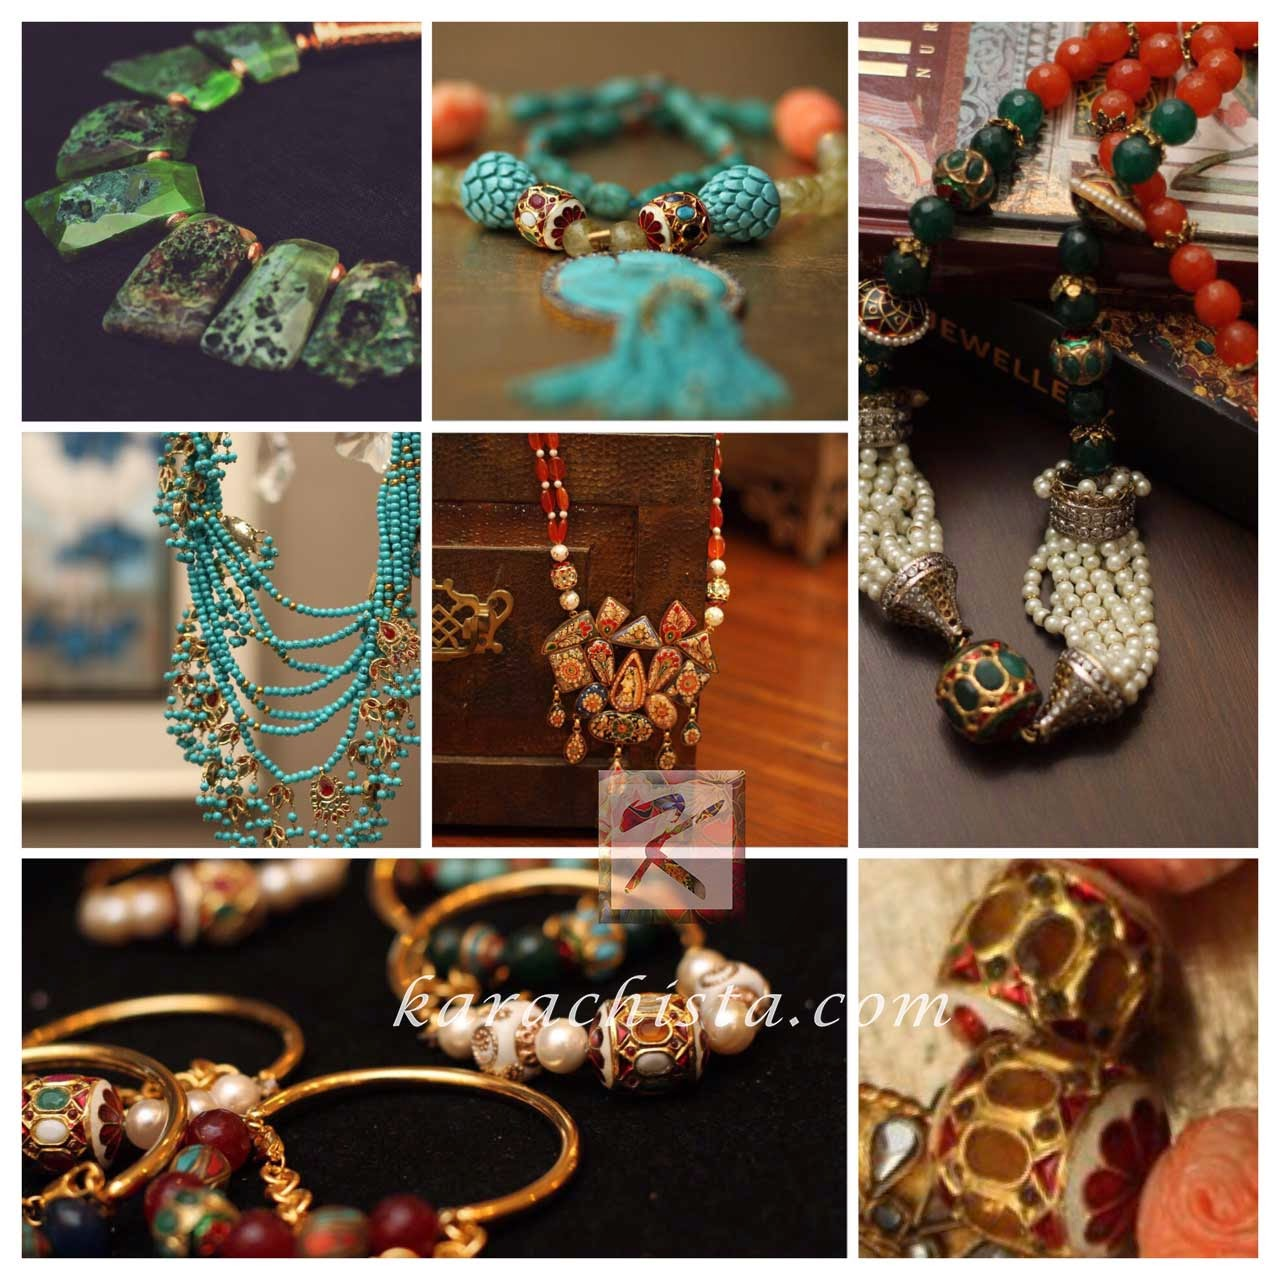 Fashion jewellery in Pakistan - Allure by Mehryn Tabani